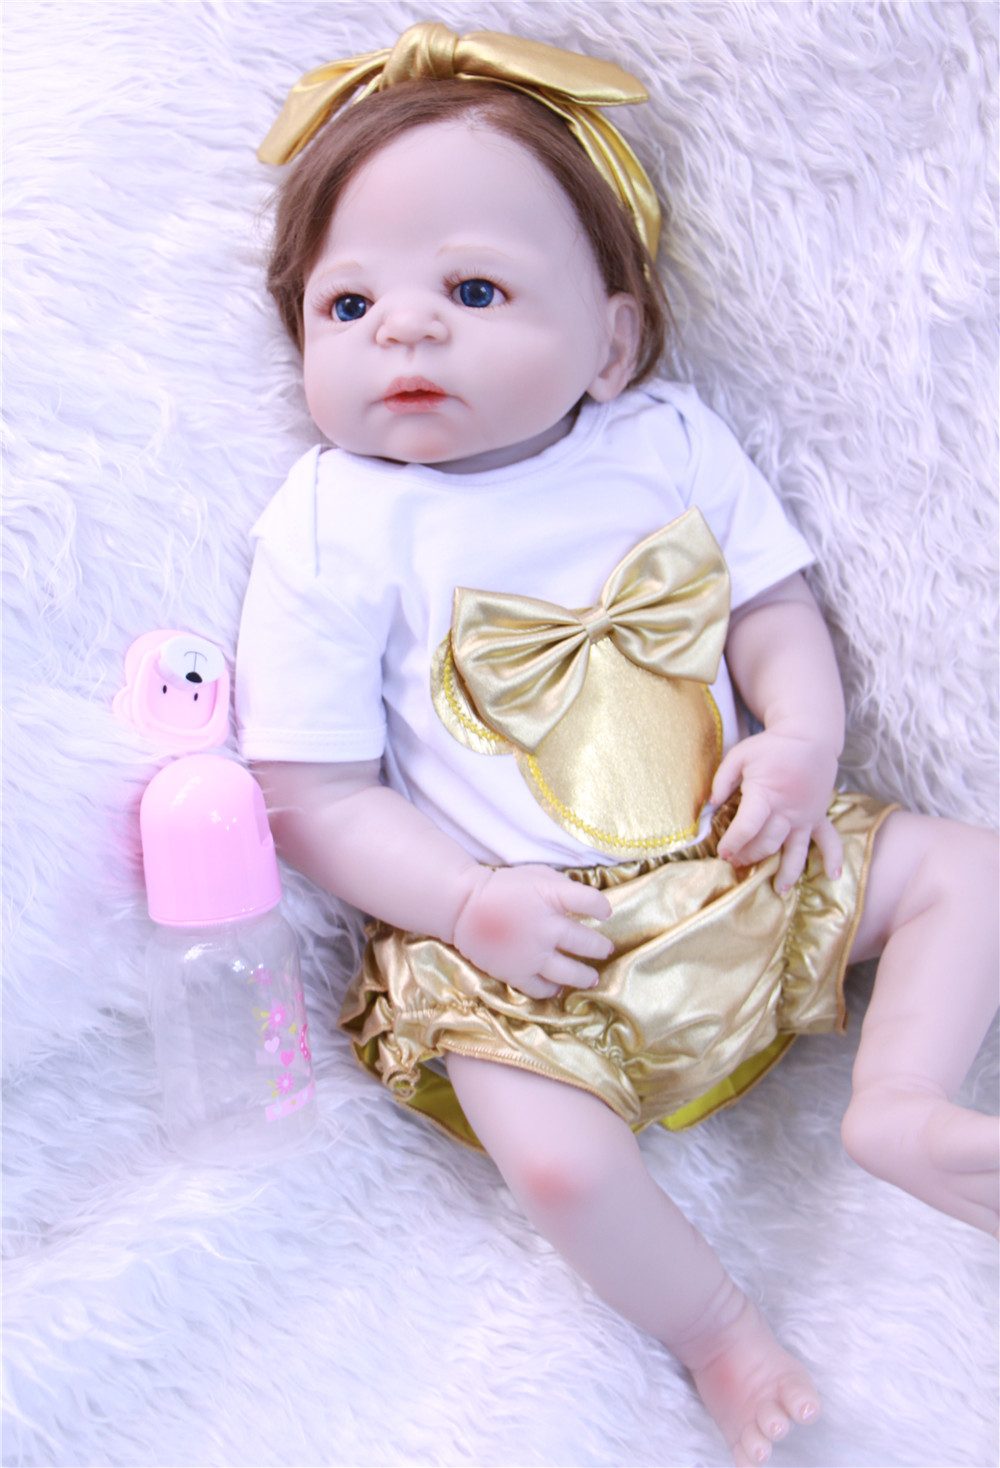 Bebes Reborn girl baby dolls 22 full silicone dolls reborn can bathe rooted hair educational toy dolls for kids giftBebes Reborn girl baby dolls 22 full silicone dolls reborn can bathe rooted hair educational toy dolls for kids gift